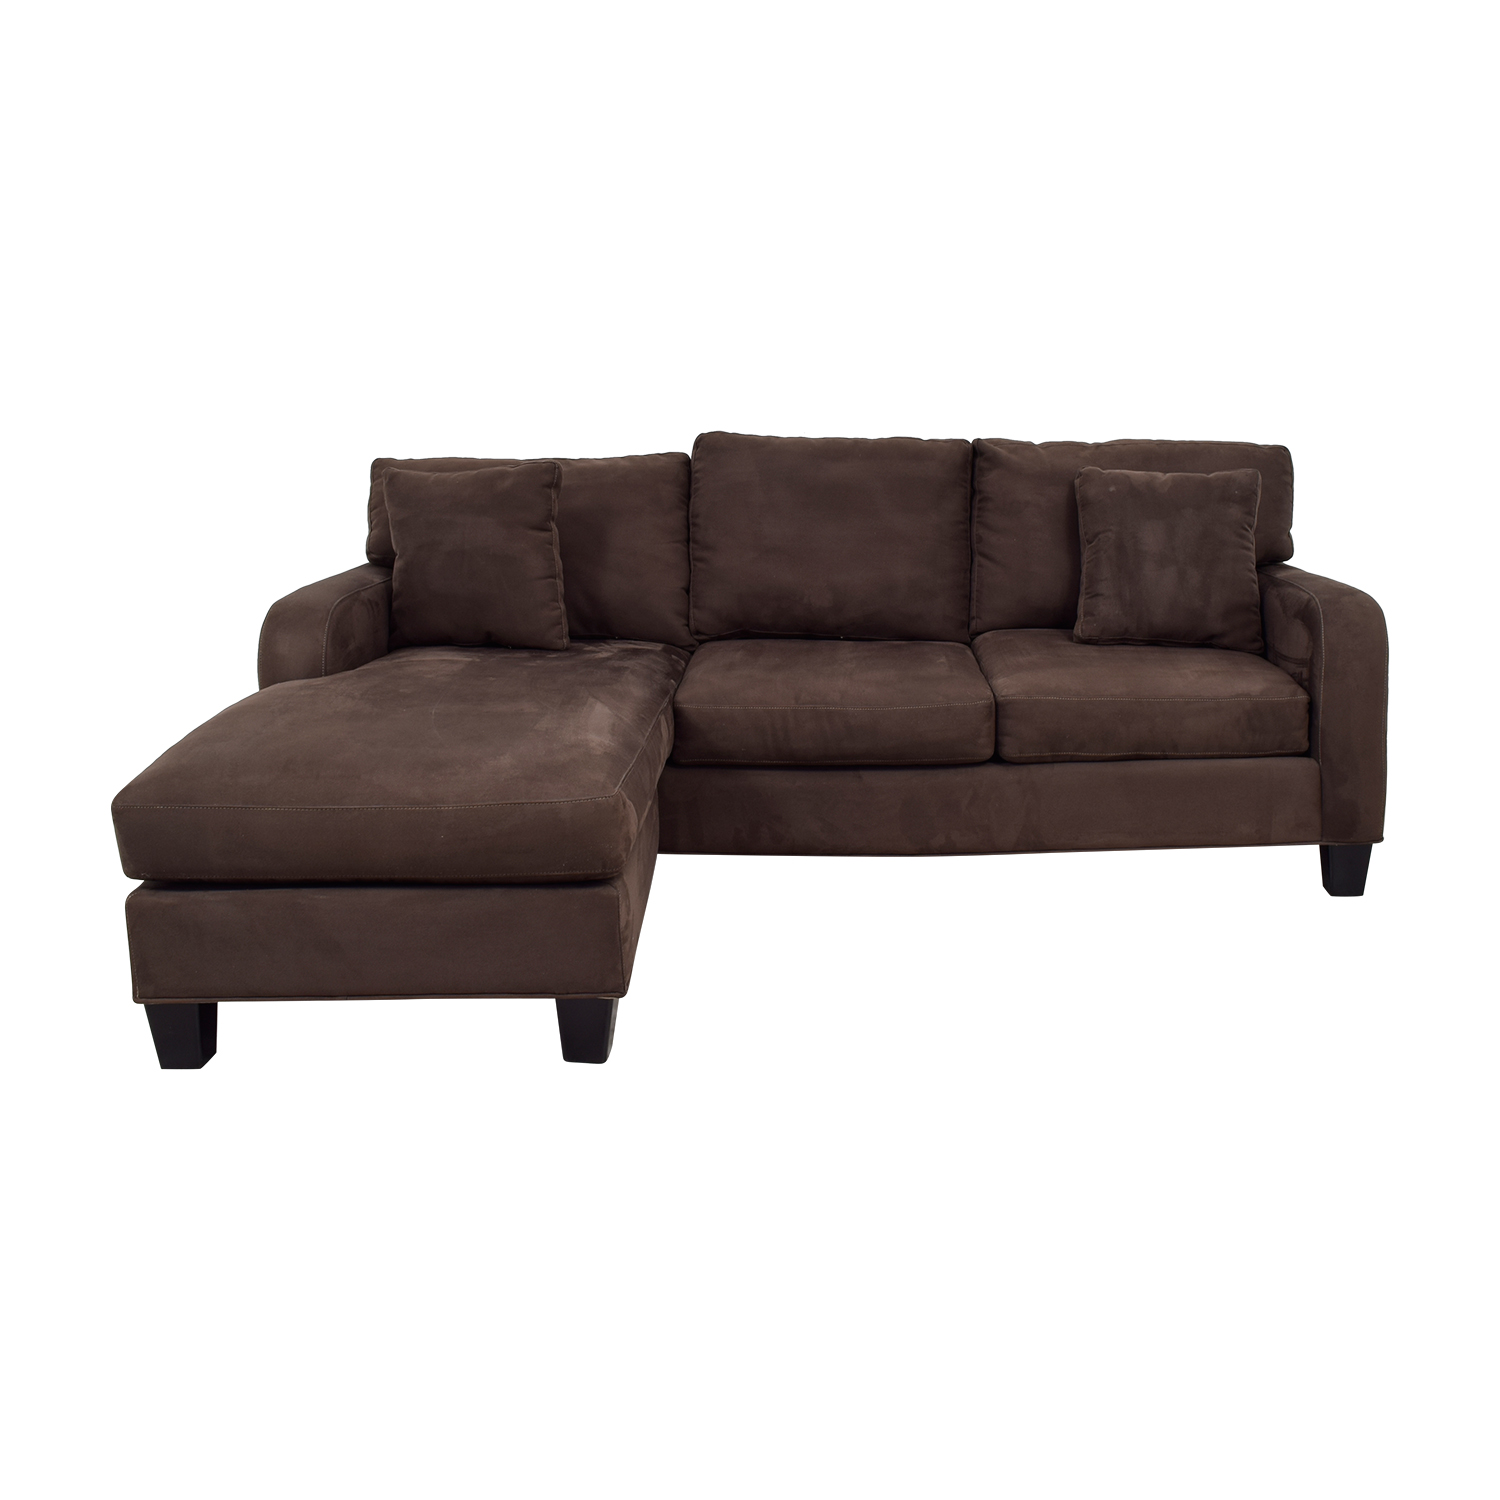 Incroyable Cindy Crawford Home Cindy Crawford Home Brown Chaise Sectional Second Hand  ...